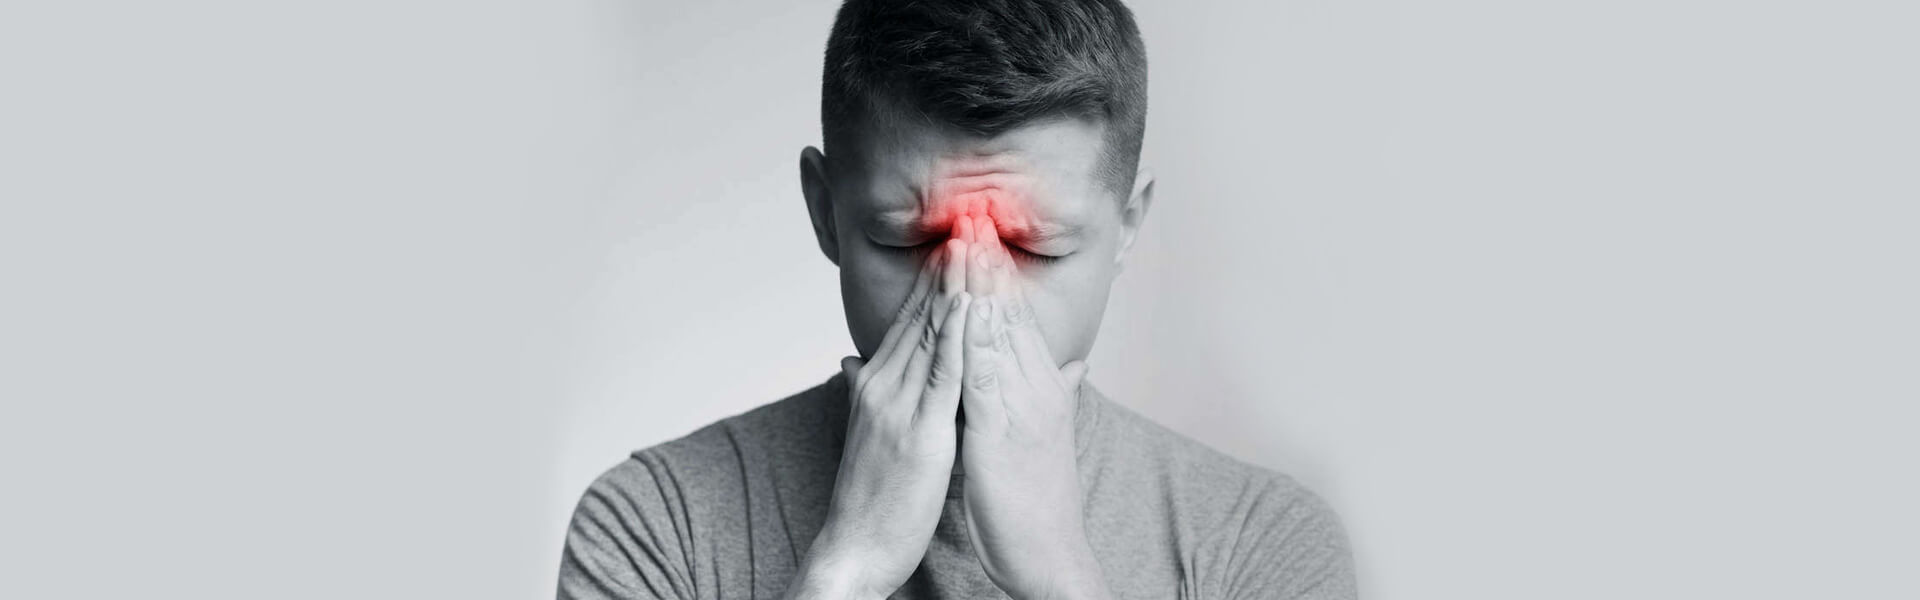 SINUS PAIN AND ORAL HEALTH